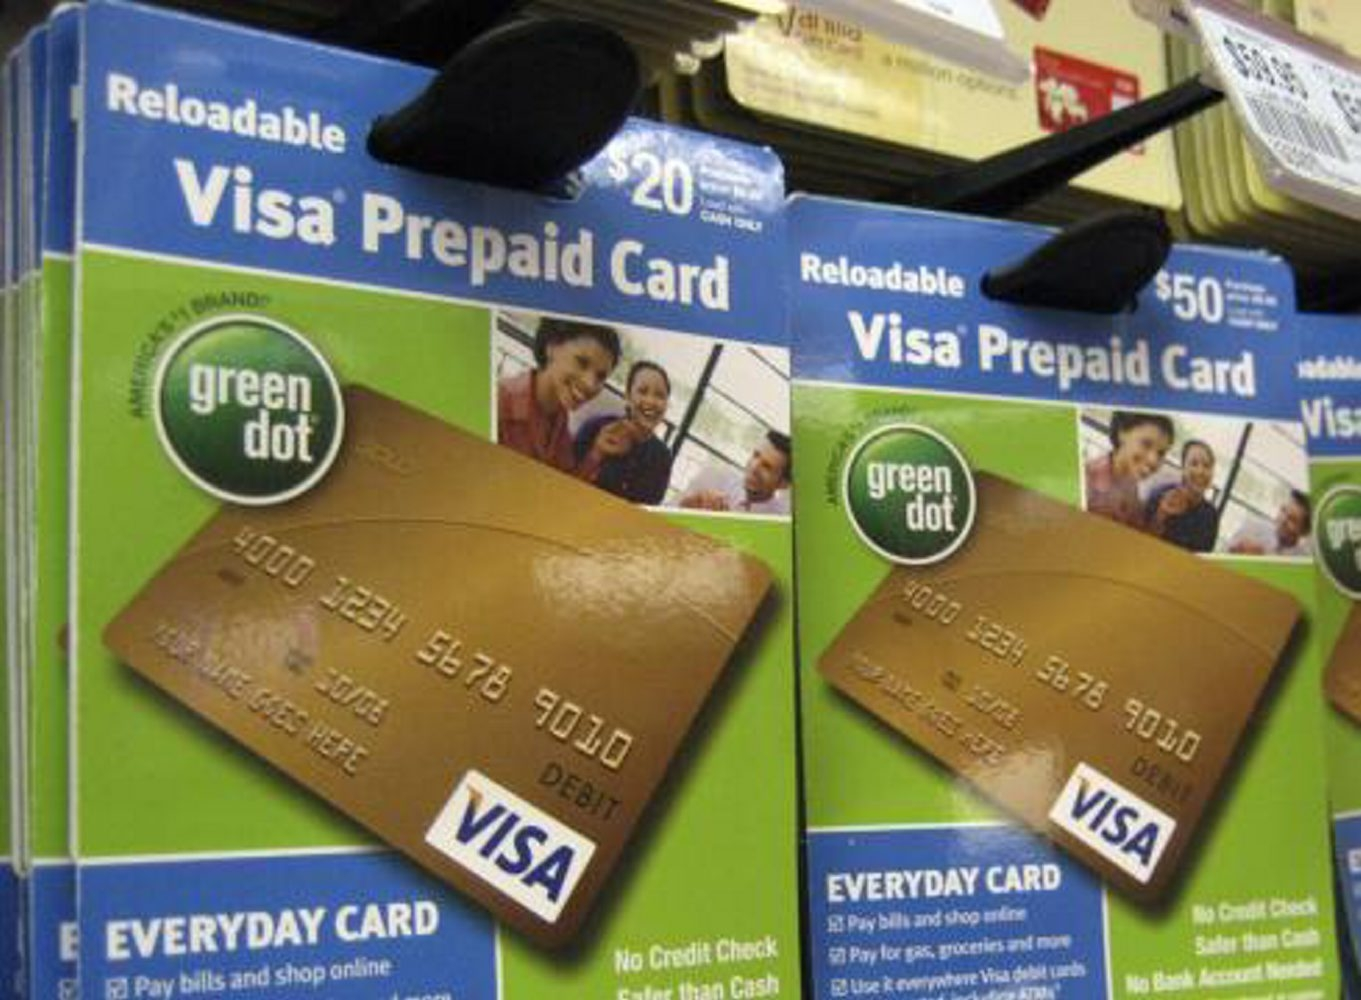 Consumers often buy prepaid debit cards at retailers, which are less regulated than banks.